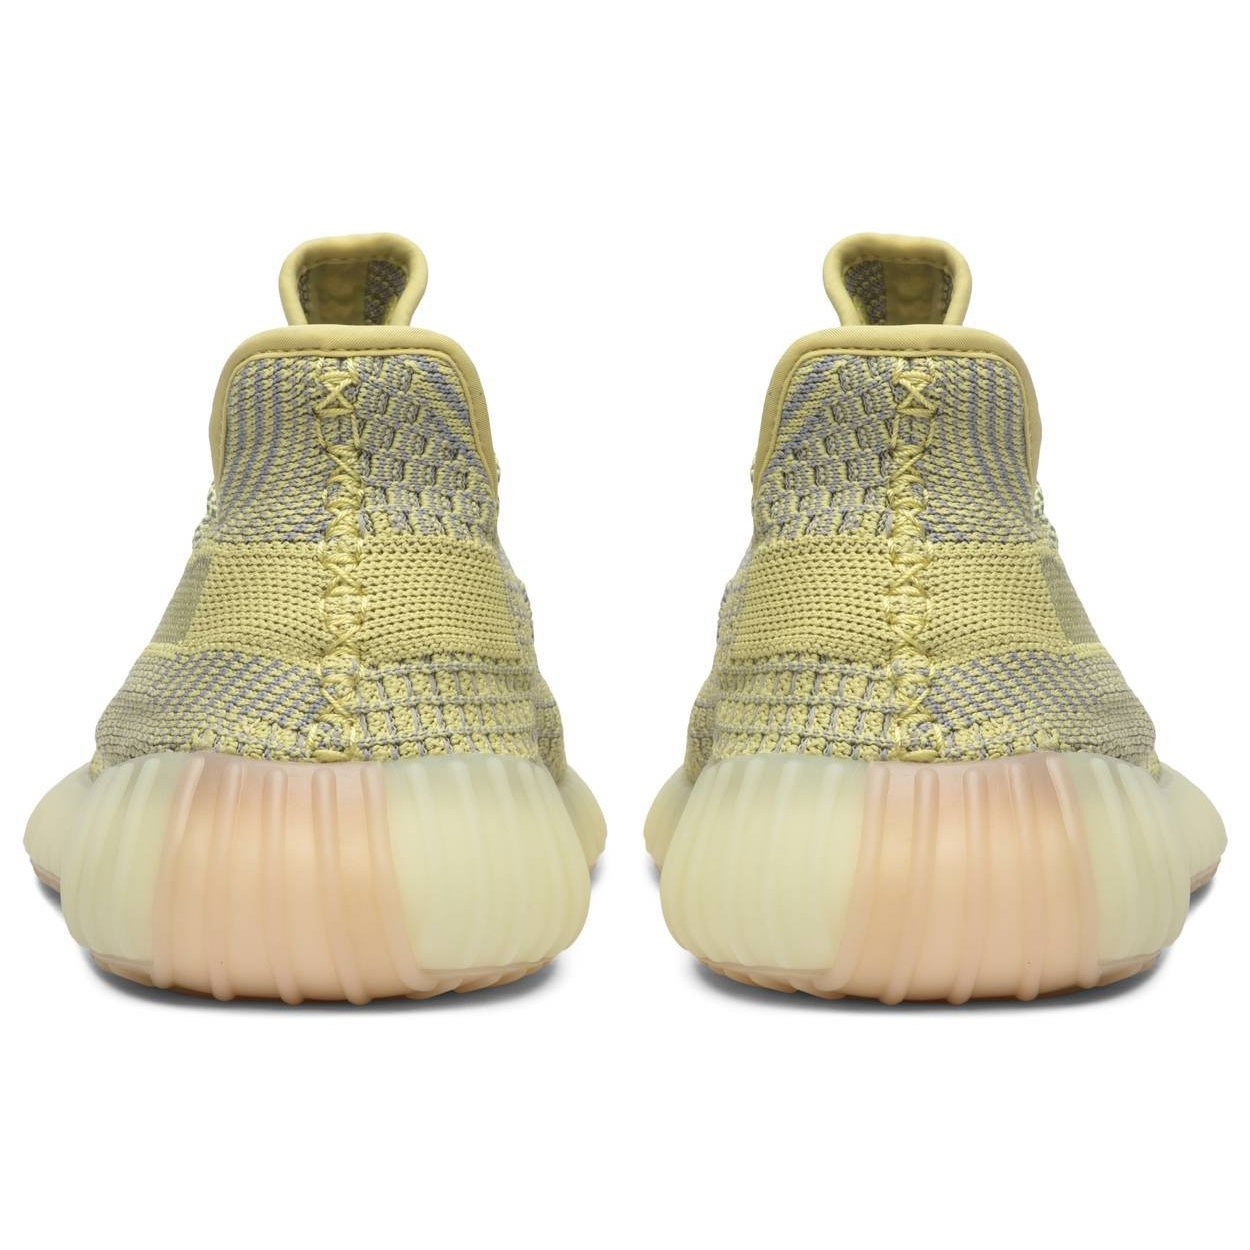 adidas Yeezy Boost 350 V2 'Antlia Non-Reflective' - After Burn